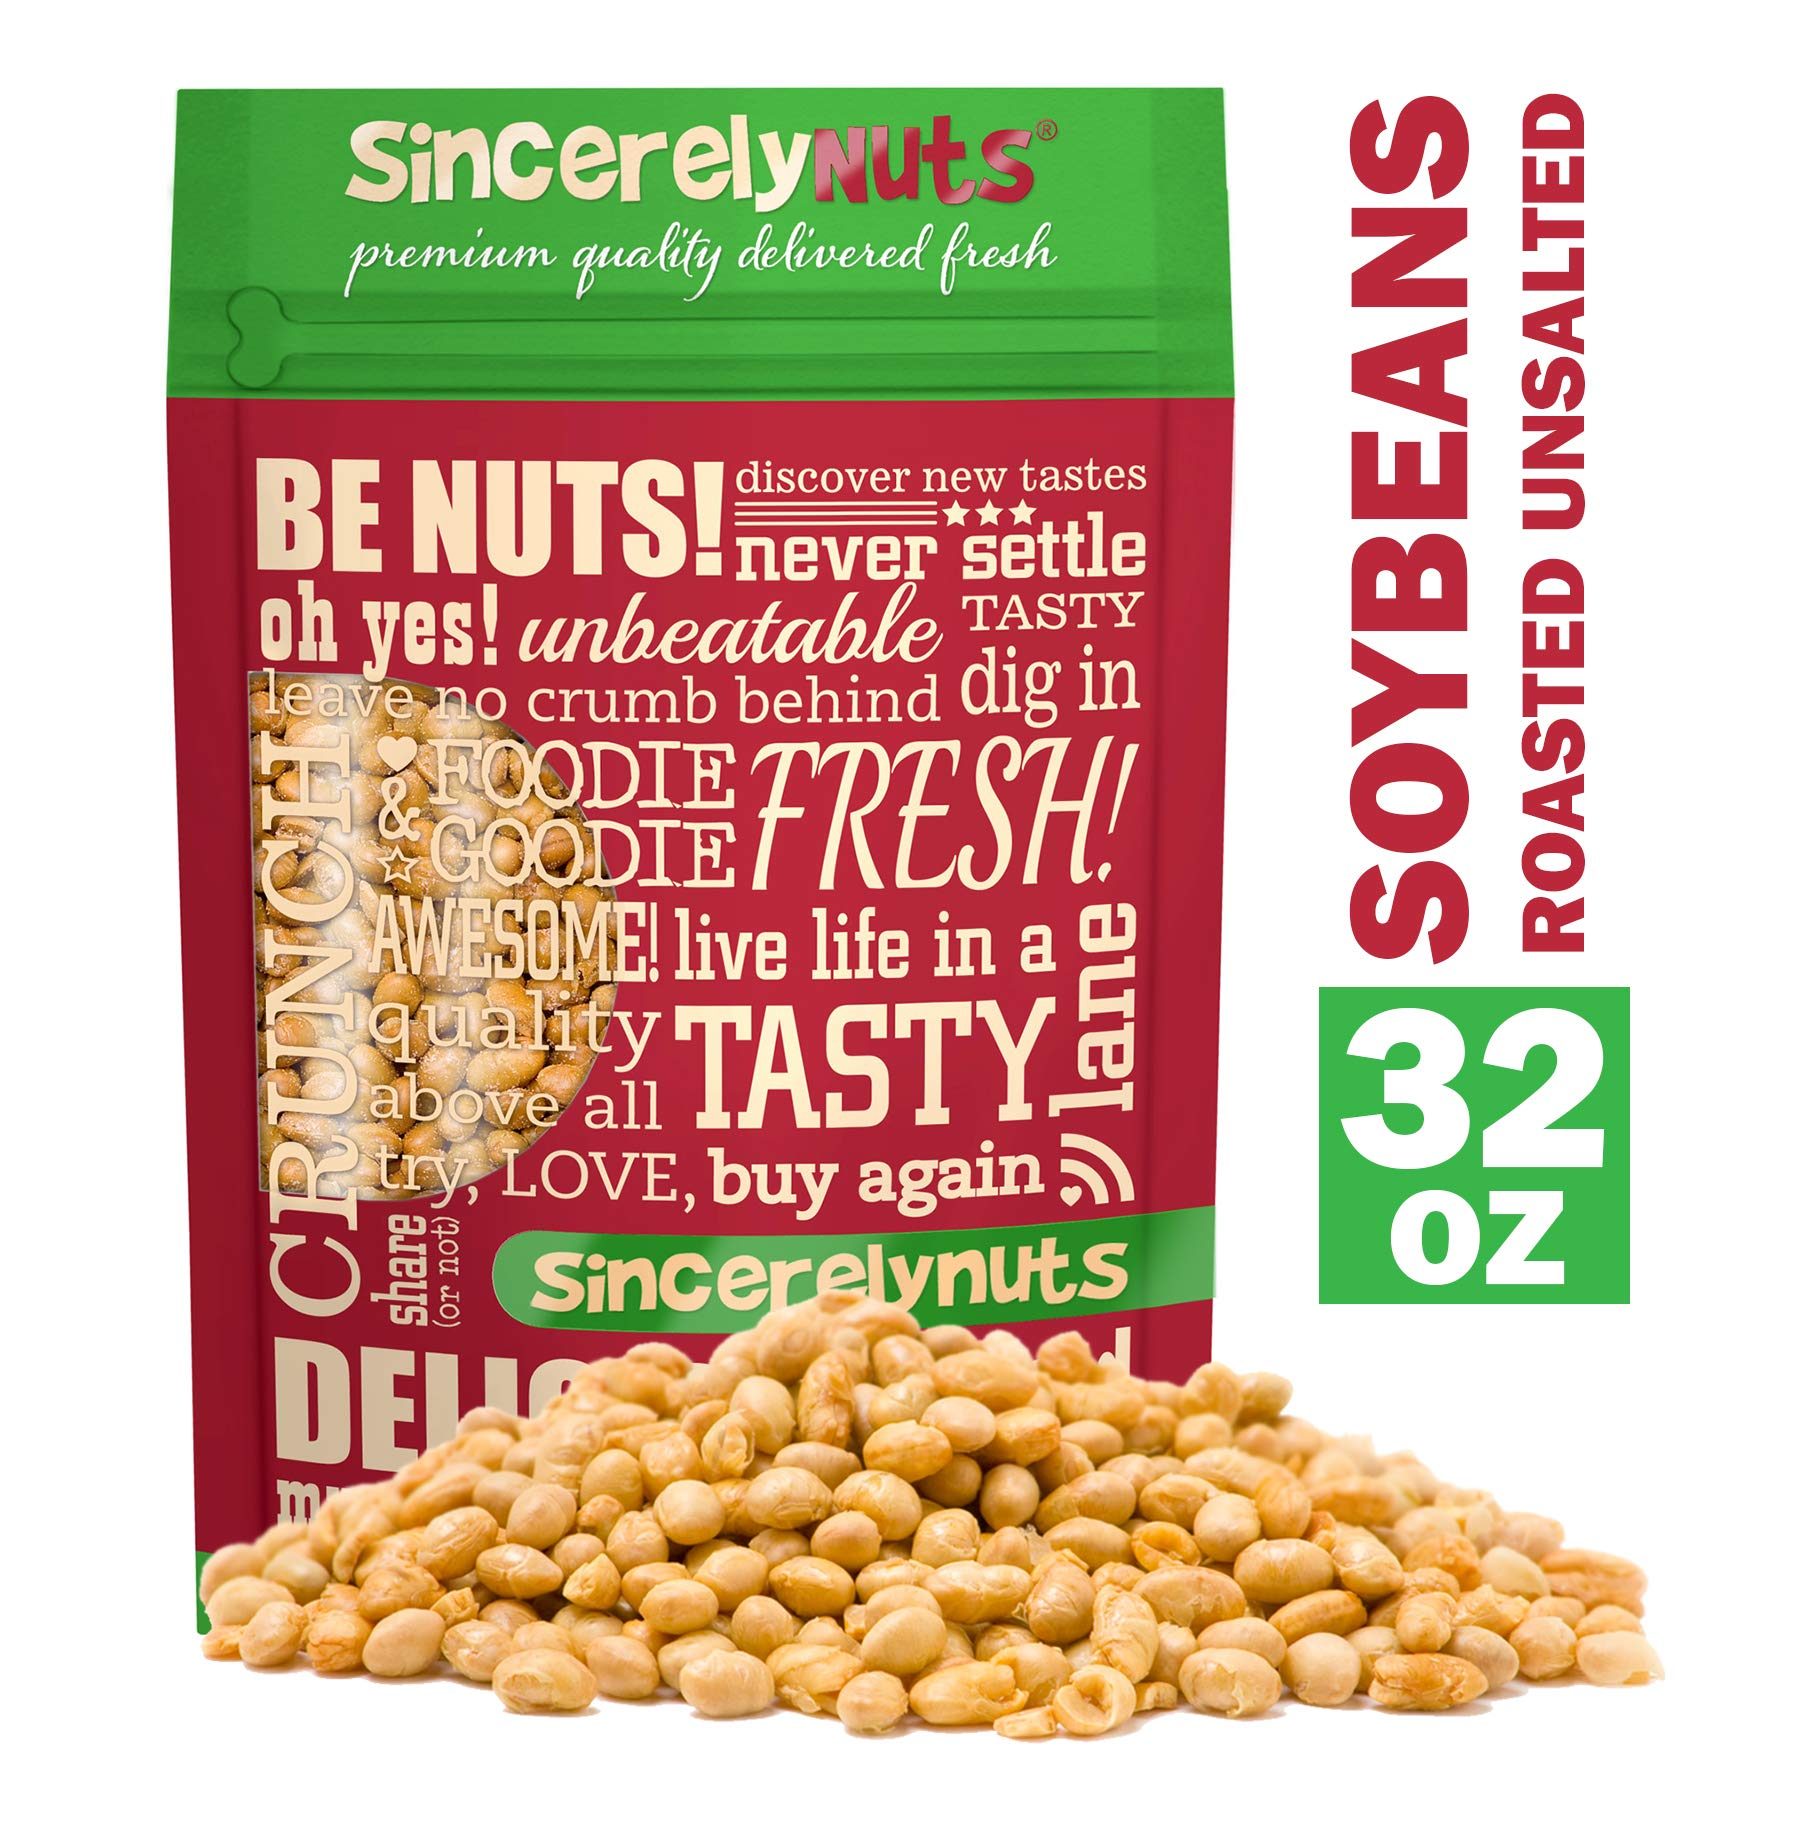 Sincerely Nuts Roasted Soybeans Unsalted (2 LB) Gluten-Free - Vegan & Kosher-Powerful Vegetarian Protein Source by Sincerely Nuts